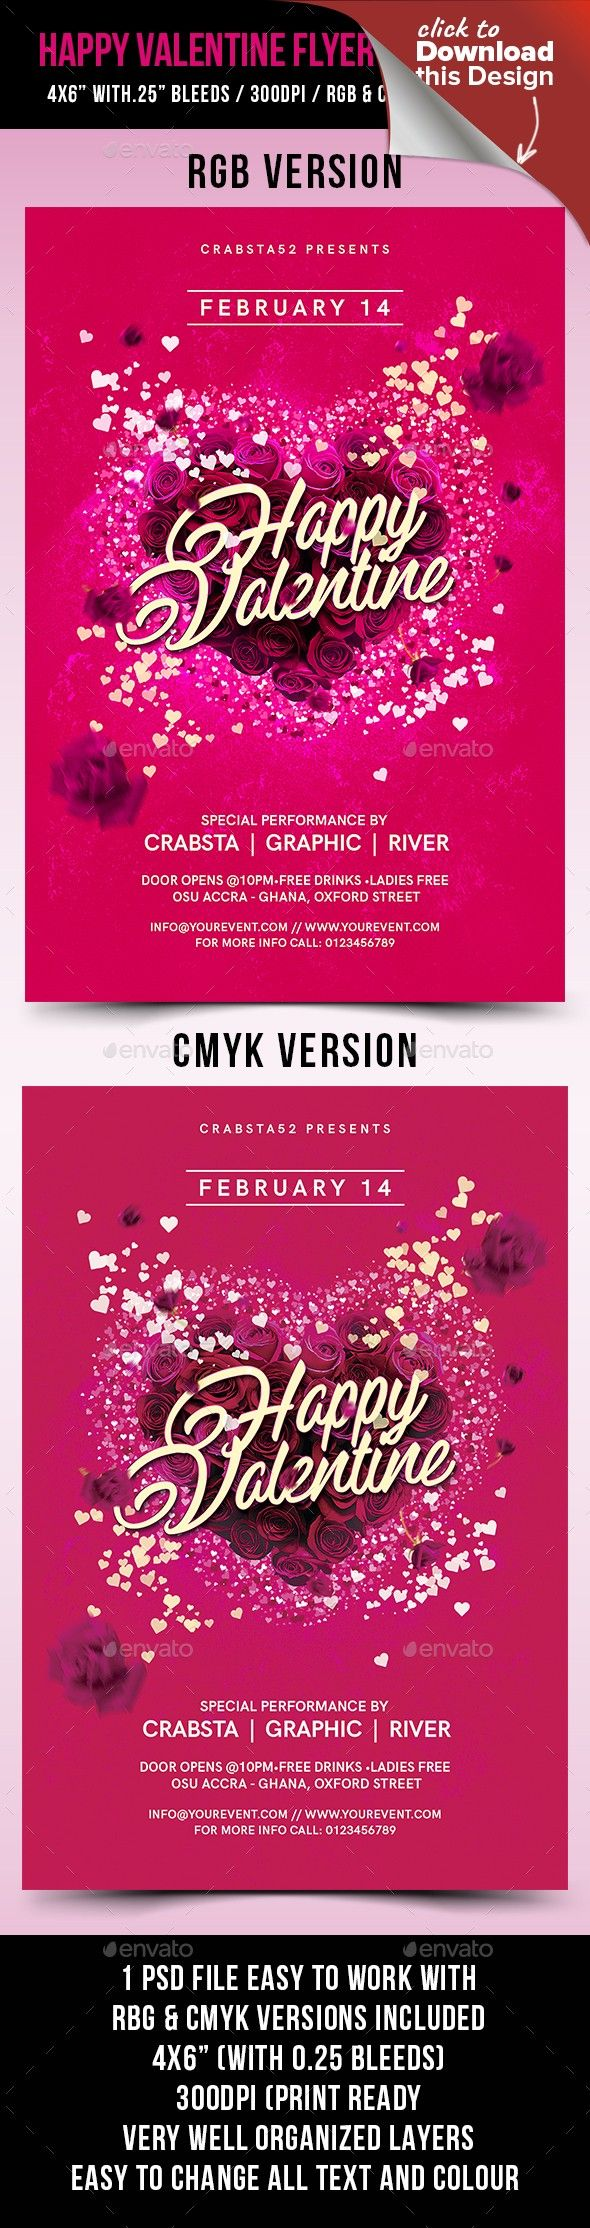 Happy Valentine Flyer Template 2 Flyer Template Template And